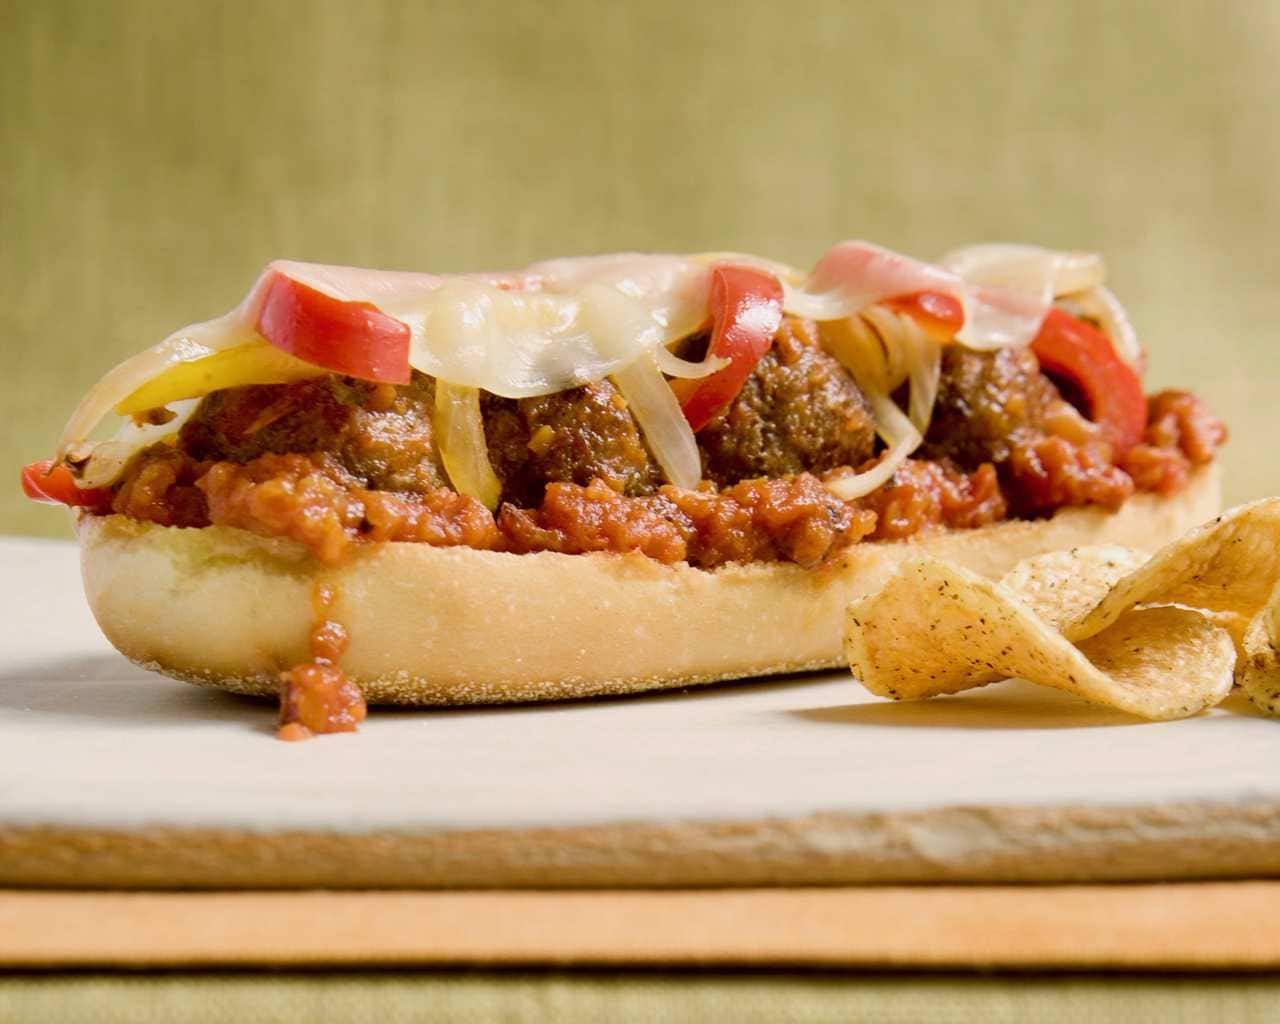 Meatball sub with chips close crop